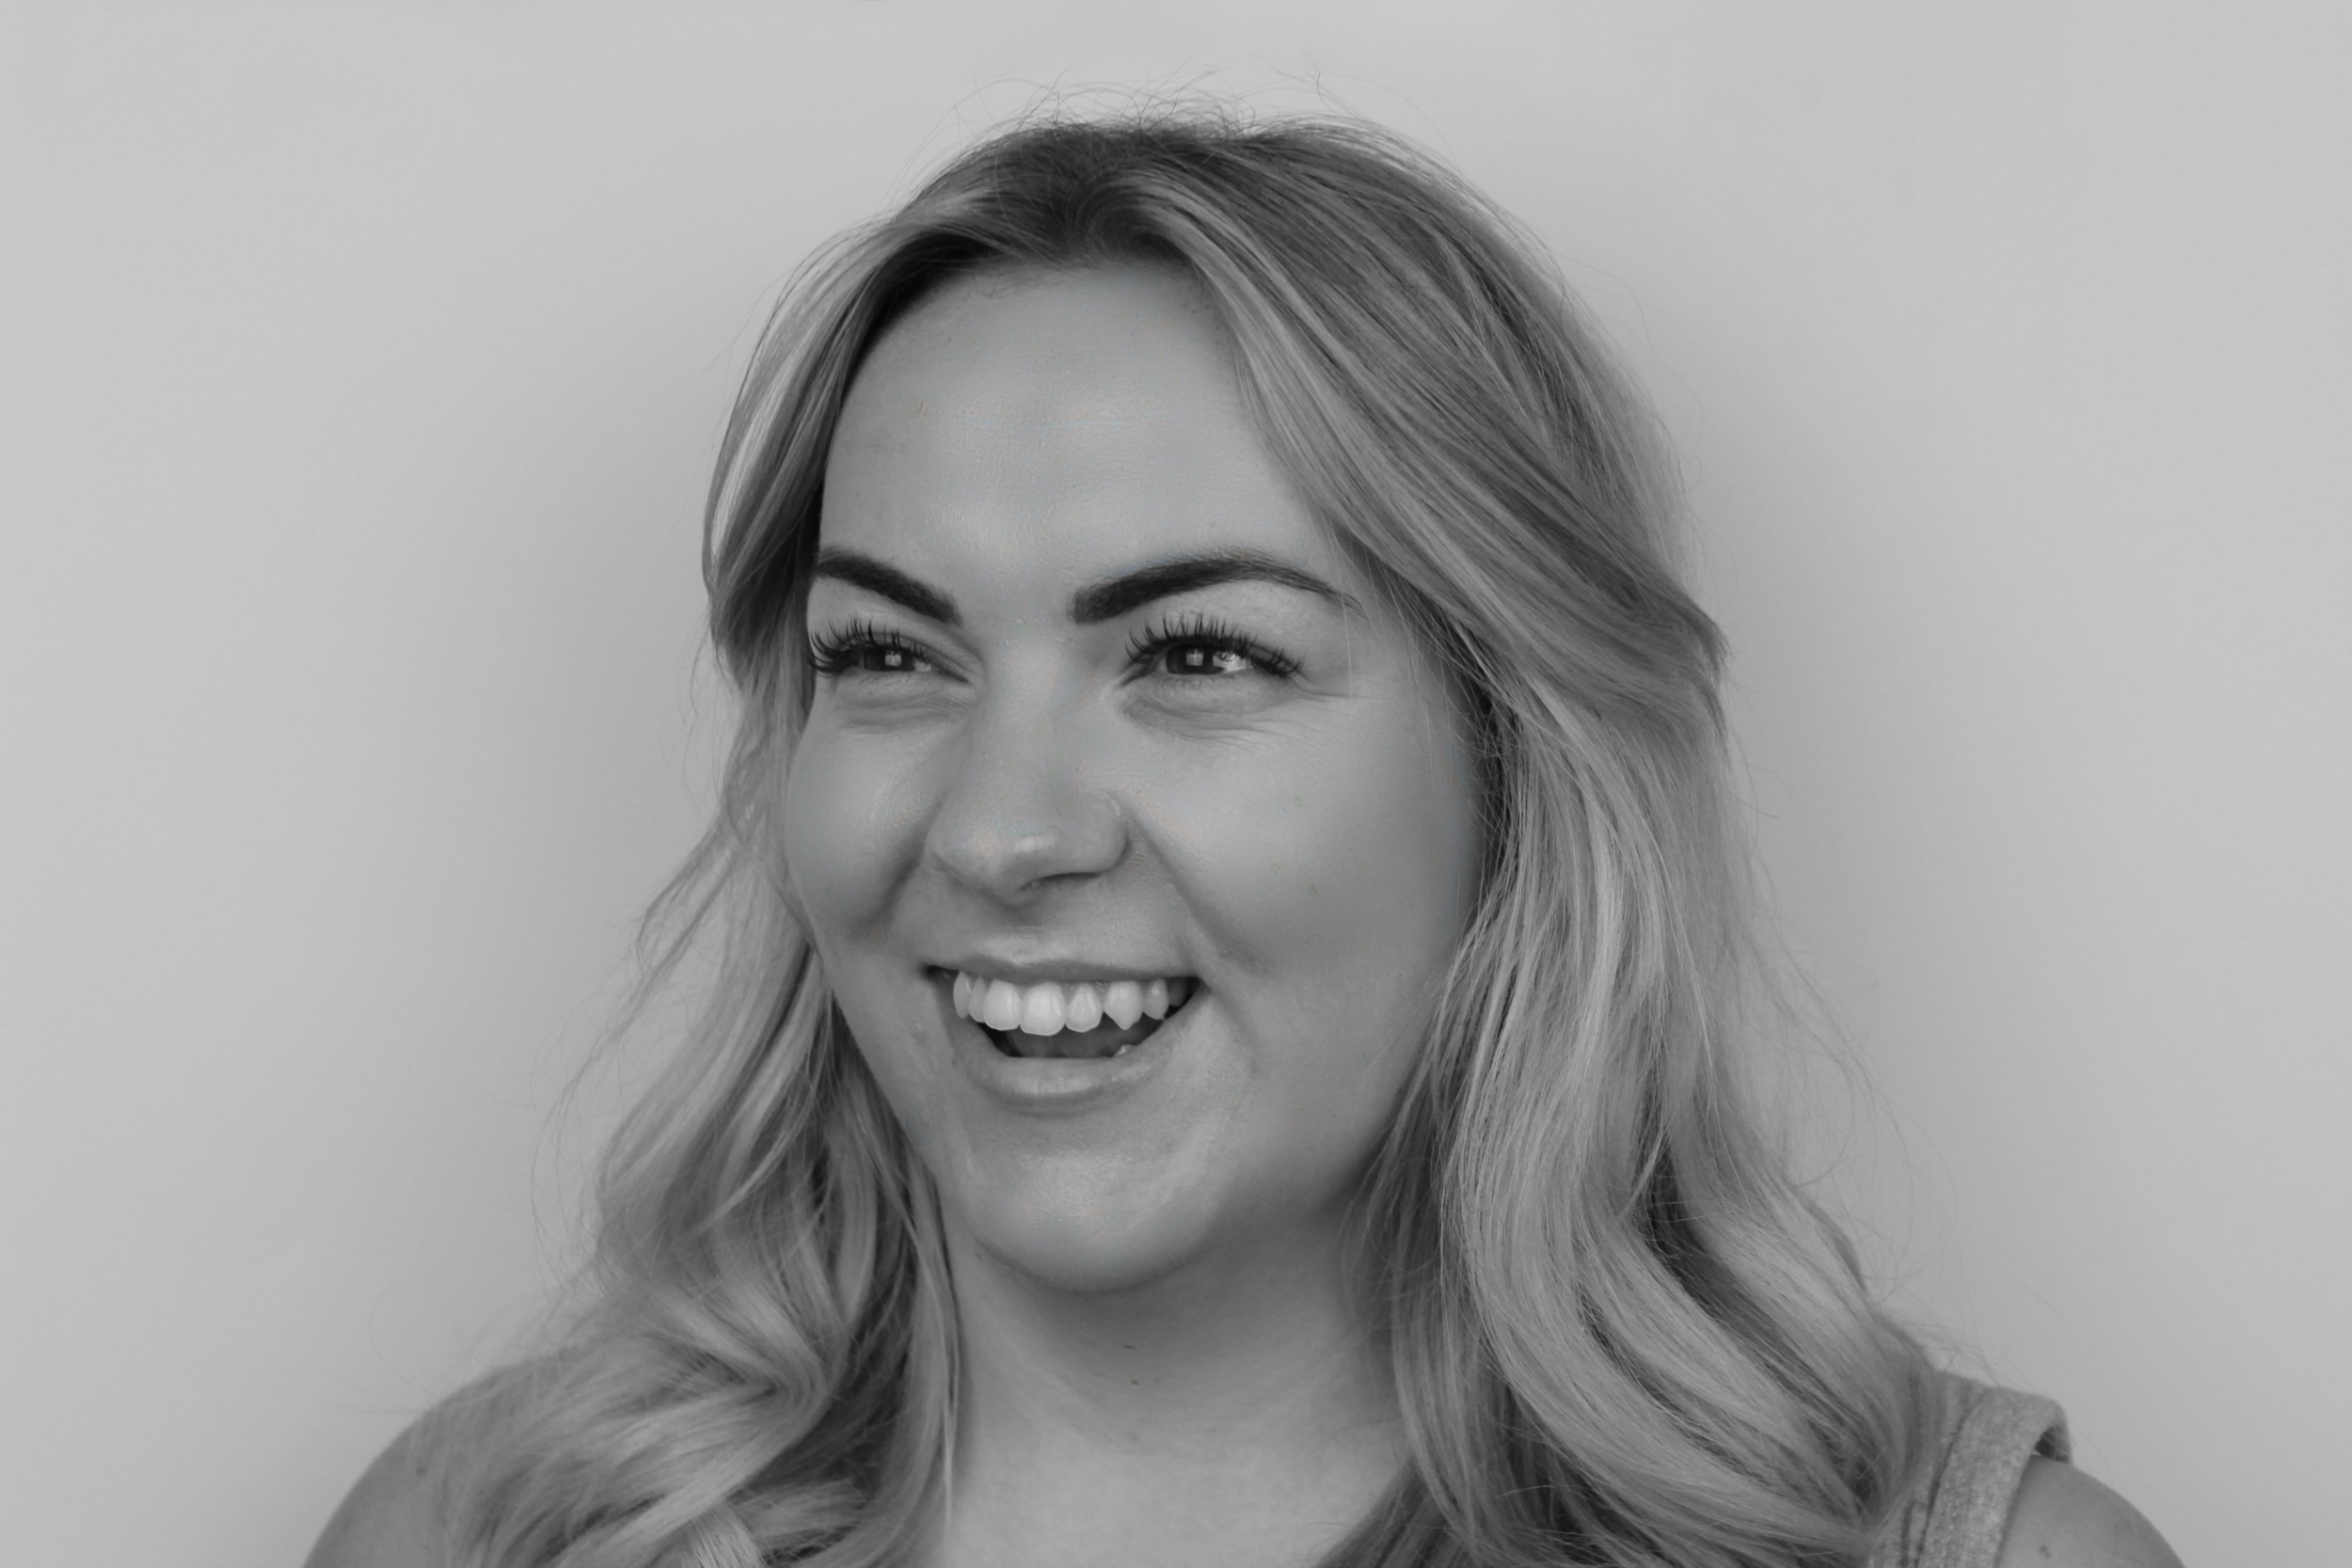 Lowri has recently graduated from the University of Manchester with a degree in Management specialising in Marketing. Lowri achieved a first class degree, with a particular focus on entrepreneurship, marketing strategy, consumer behaviour and CRM management.    She has a wealth of knowledge of marketing and experience in events and customer service.